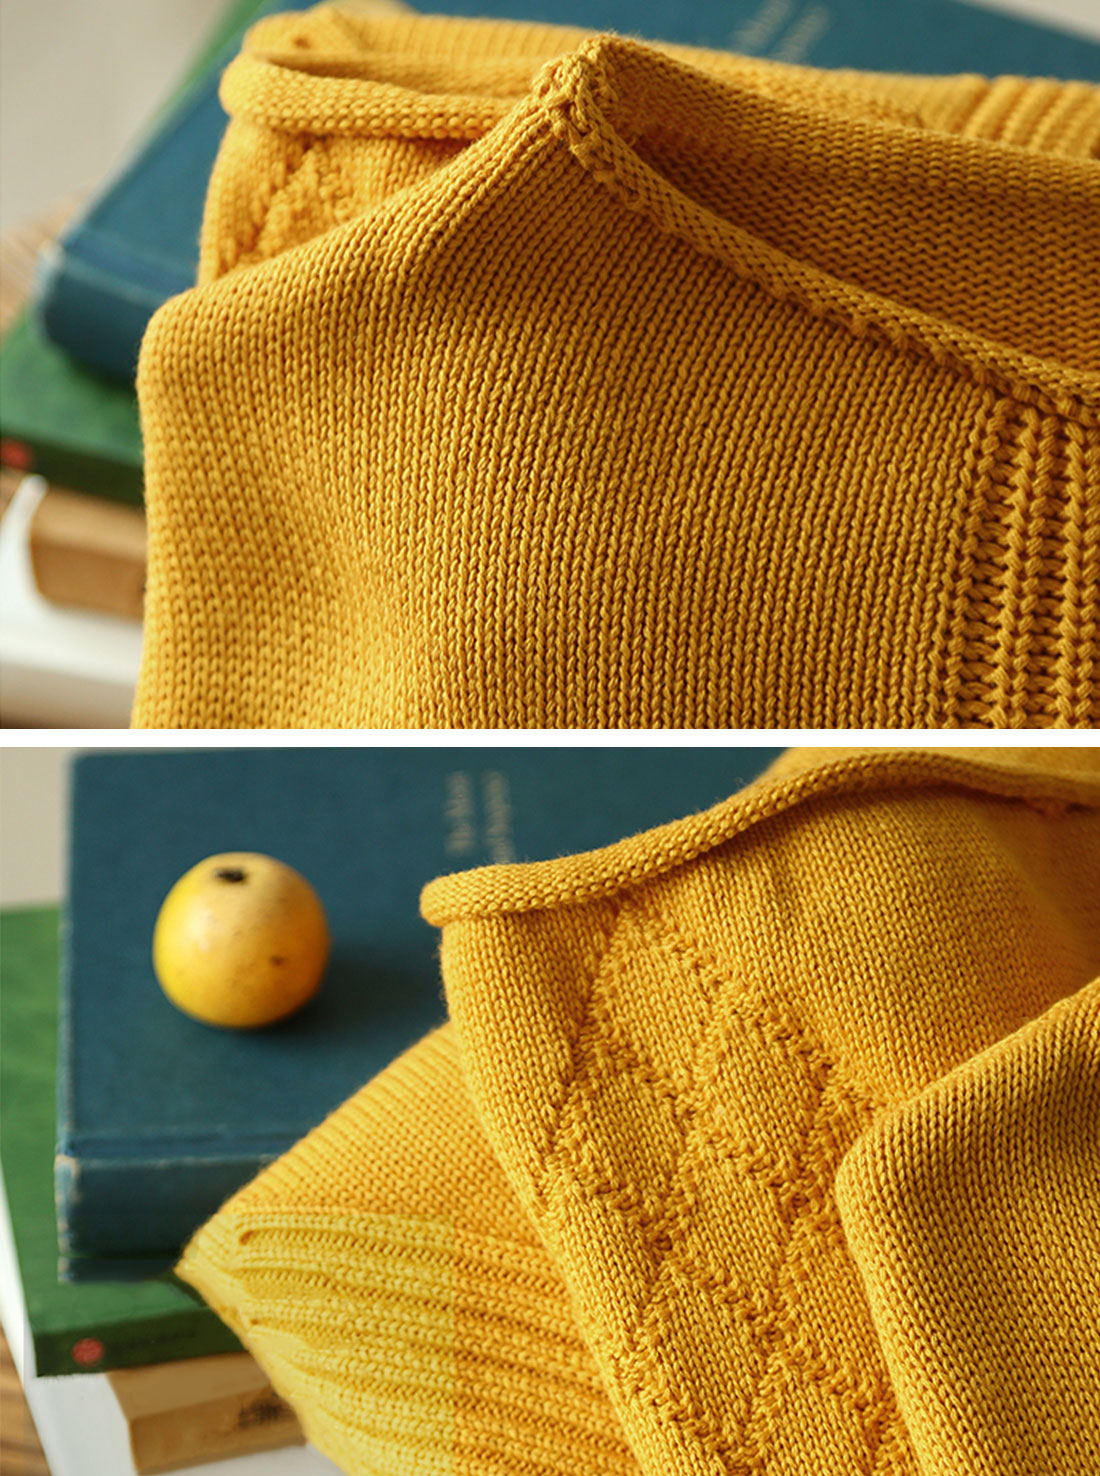 Two-pocket knitted sweater Dress Details 2